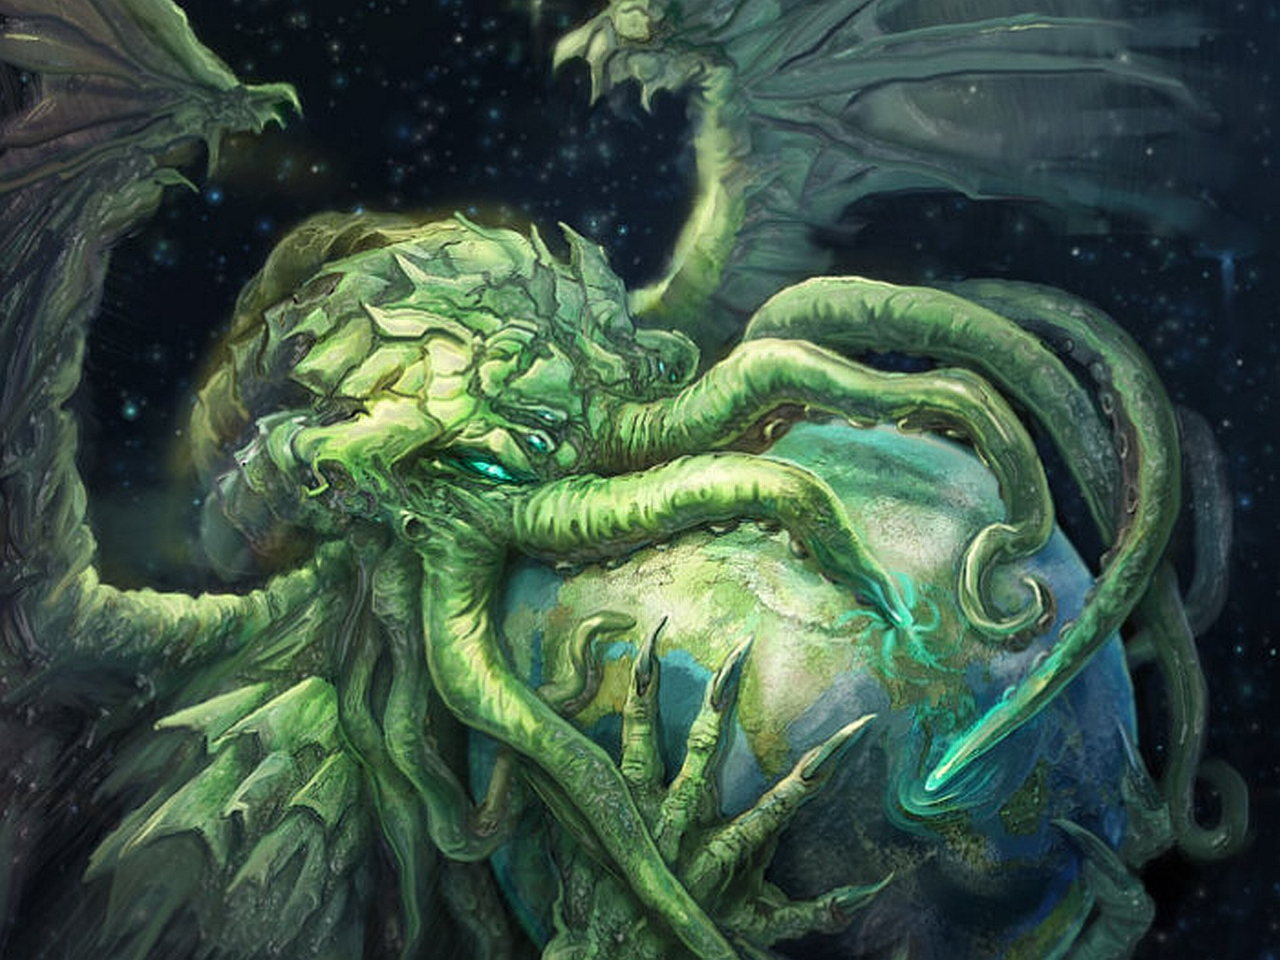 Free Download Cthulhu Wallpaper 1920x1200 Hd Walls Find